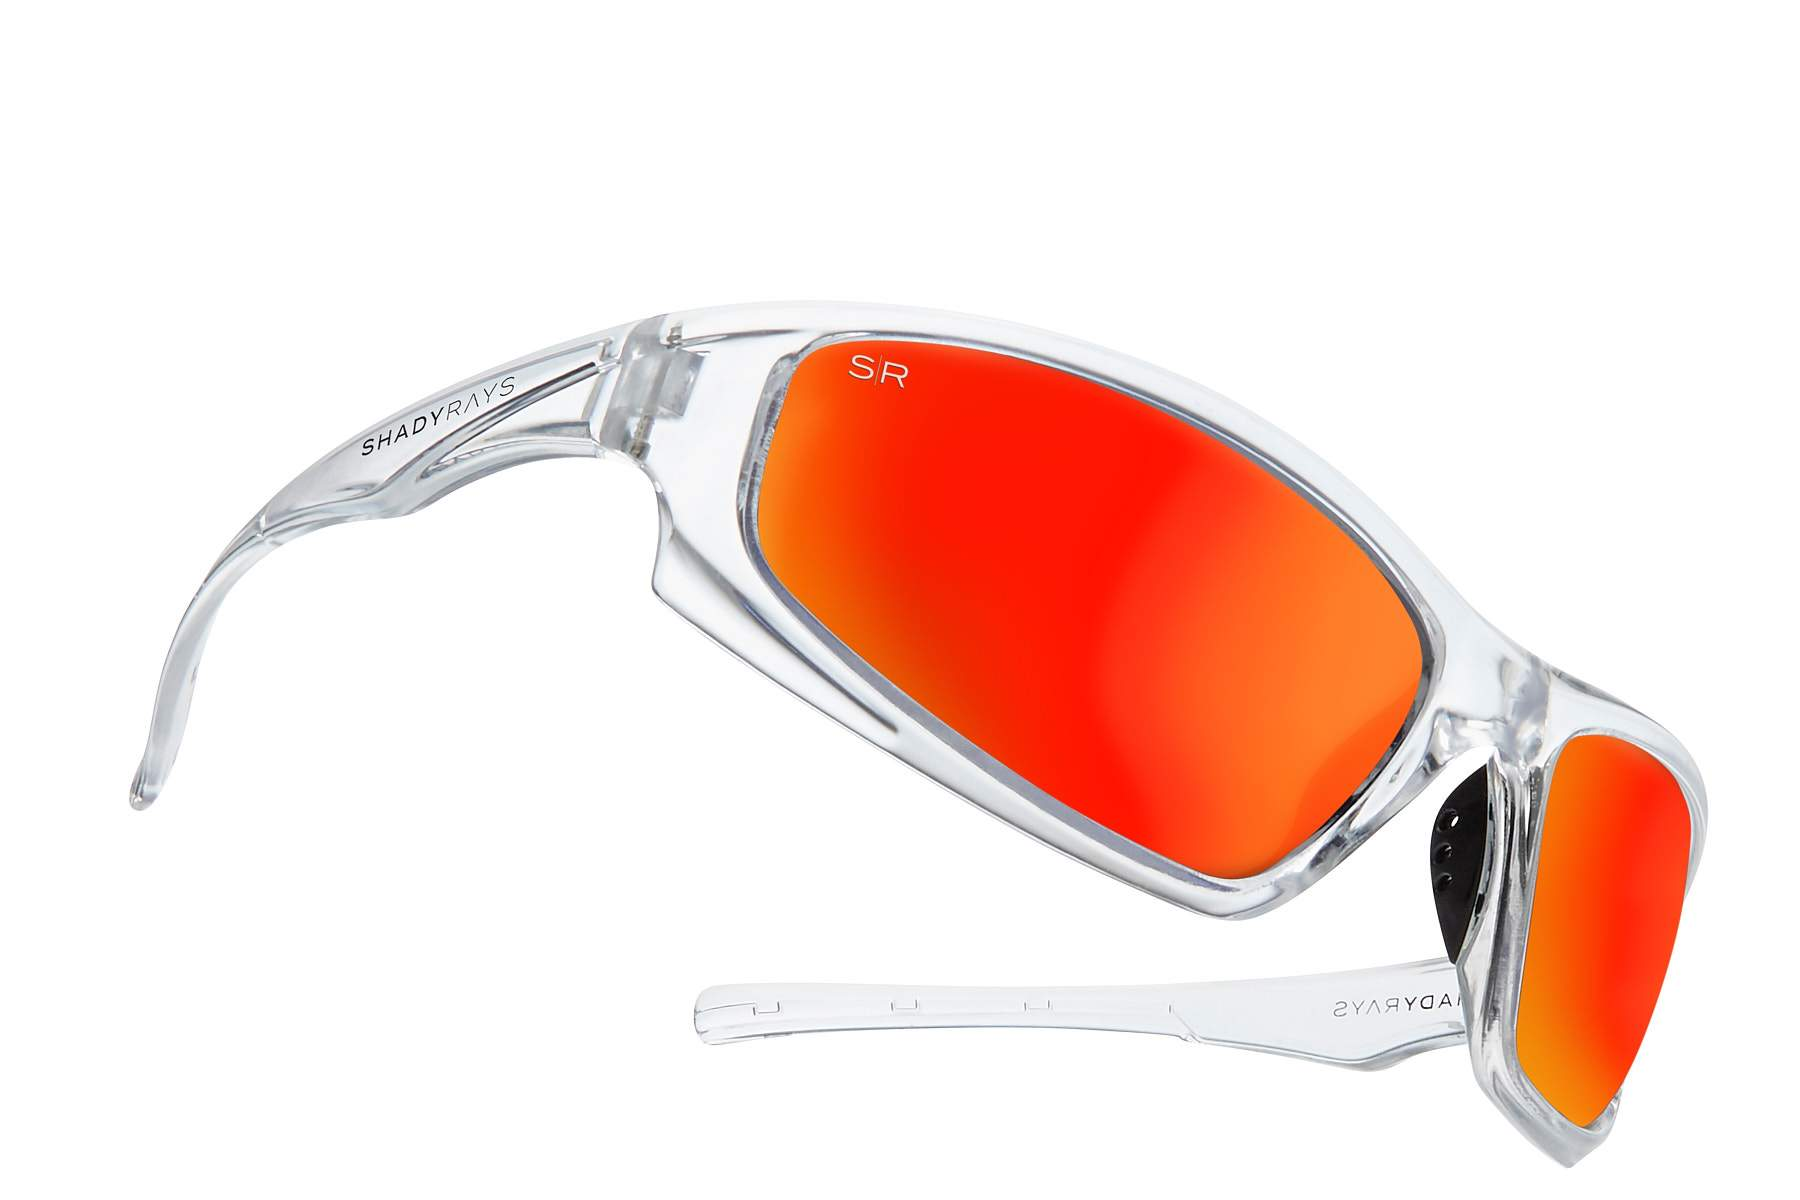 bf822b5bca94 Shady Rays X Series - Infrared Ice Polarized Sunglasses – Shady Rays ...